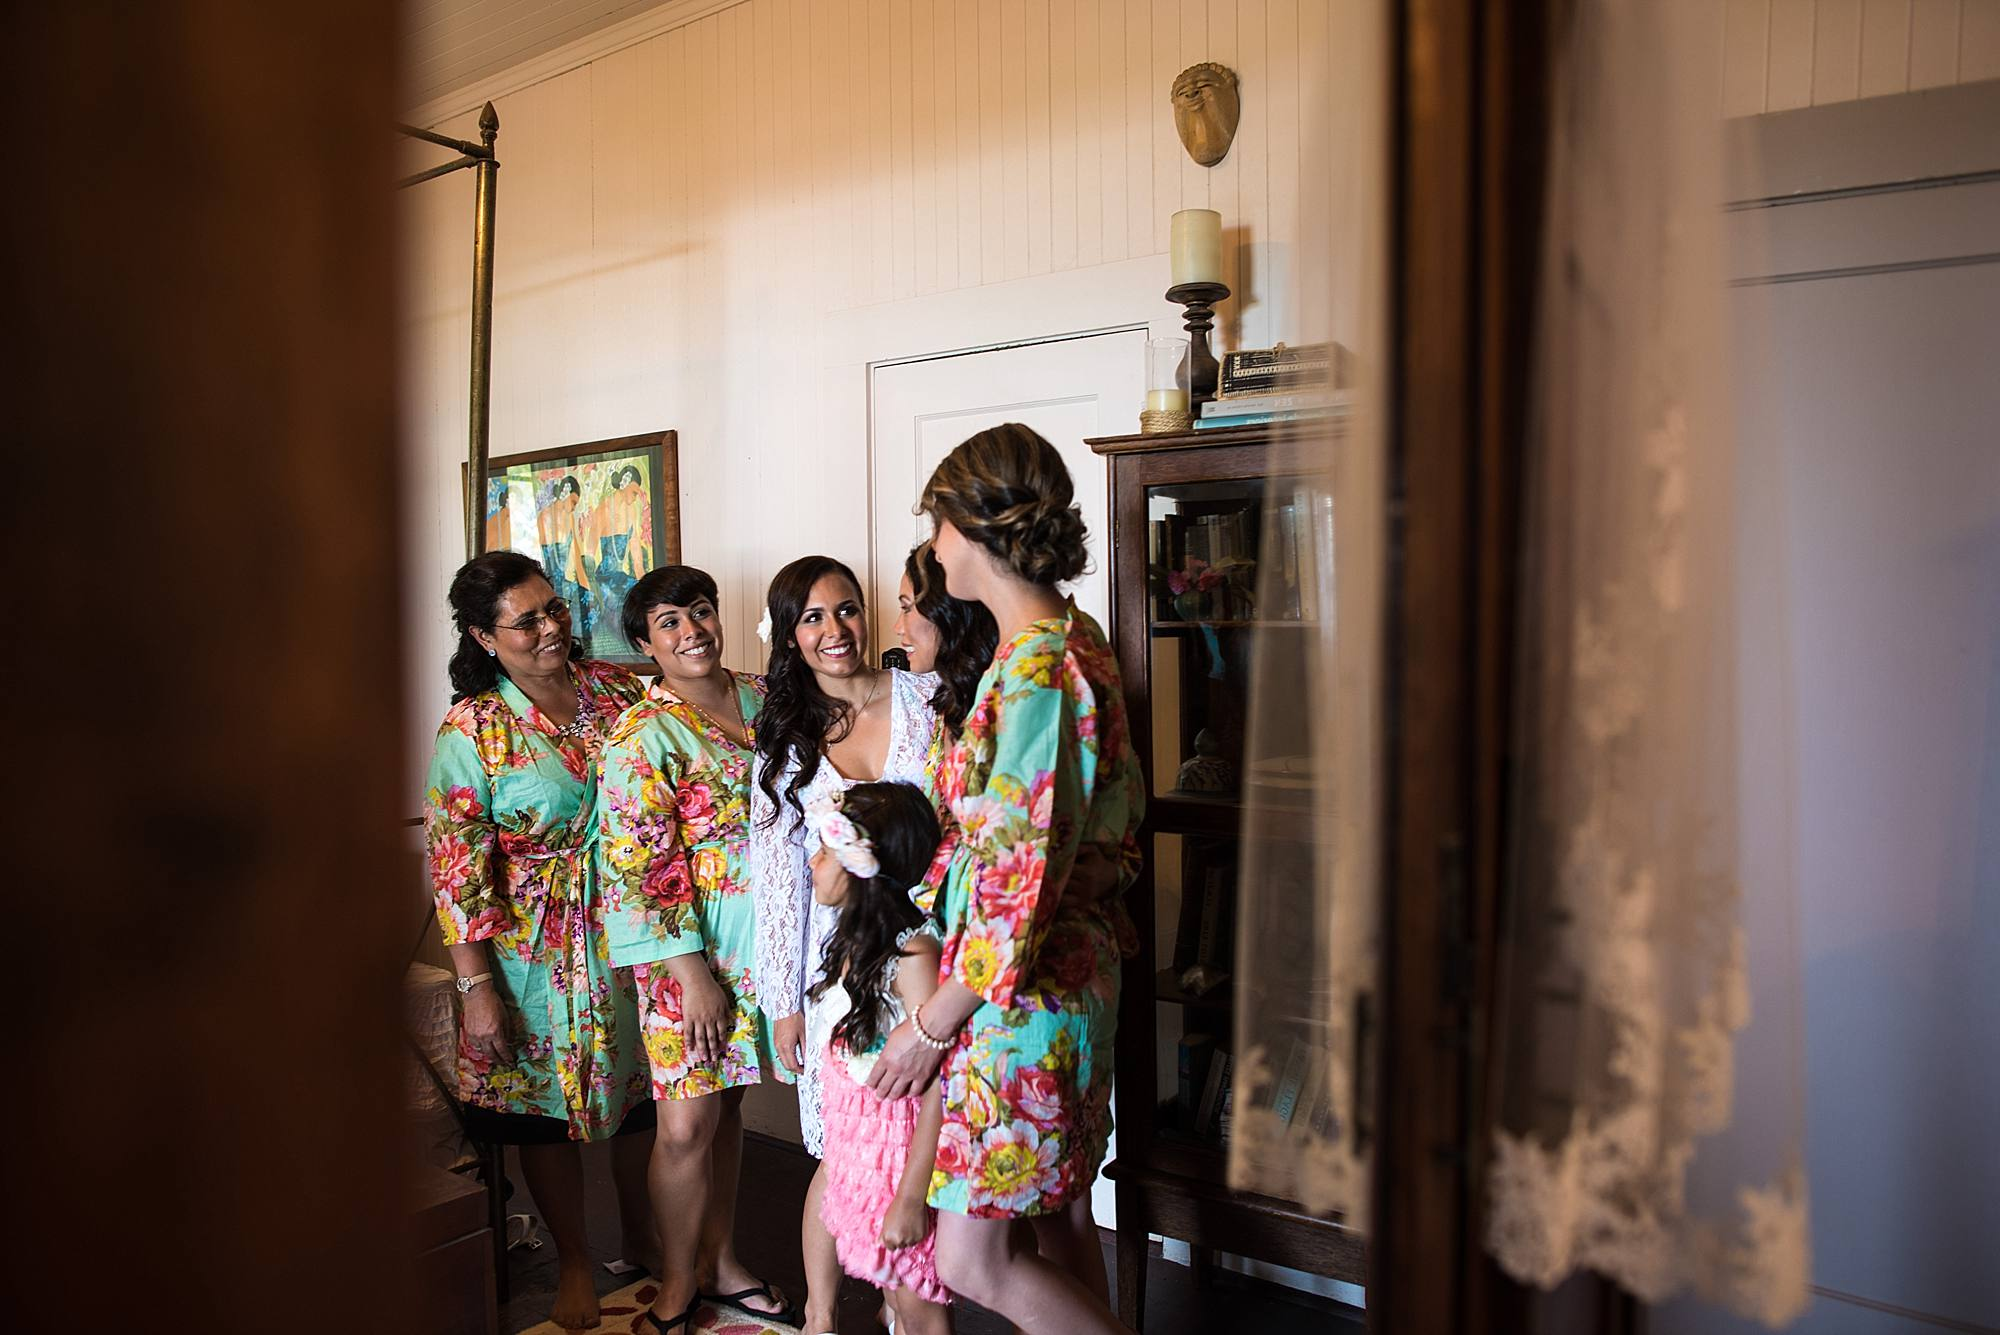 Bridesmaids in matching floral robes